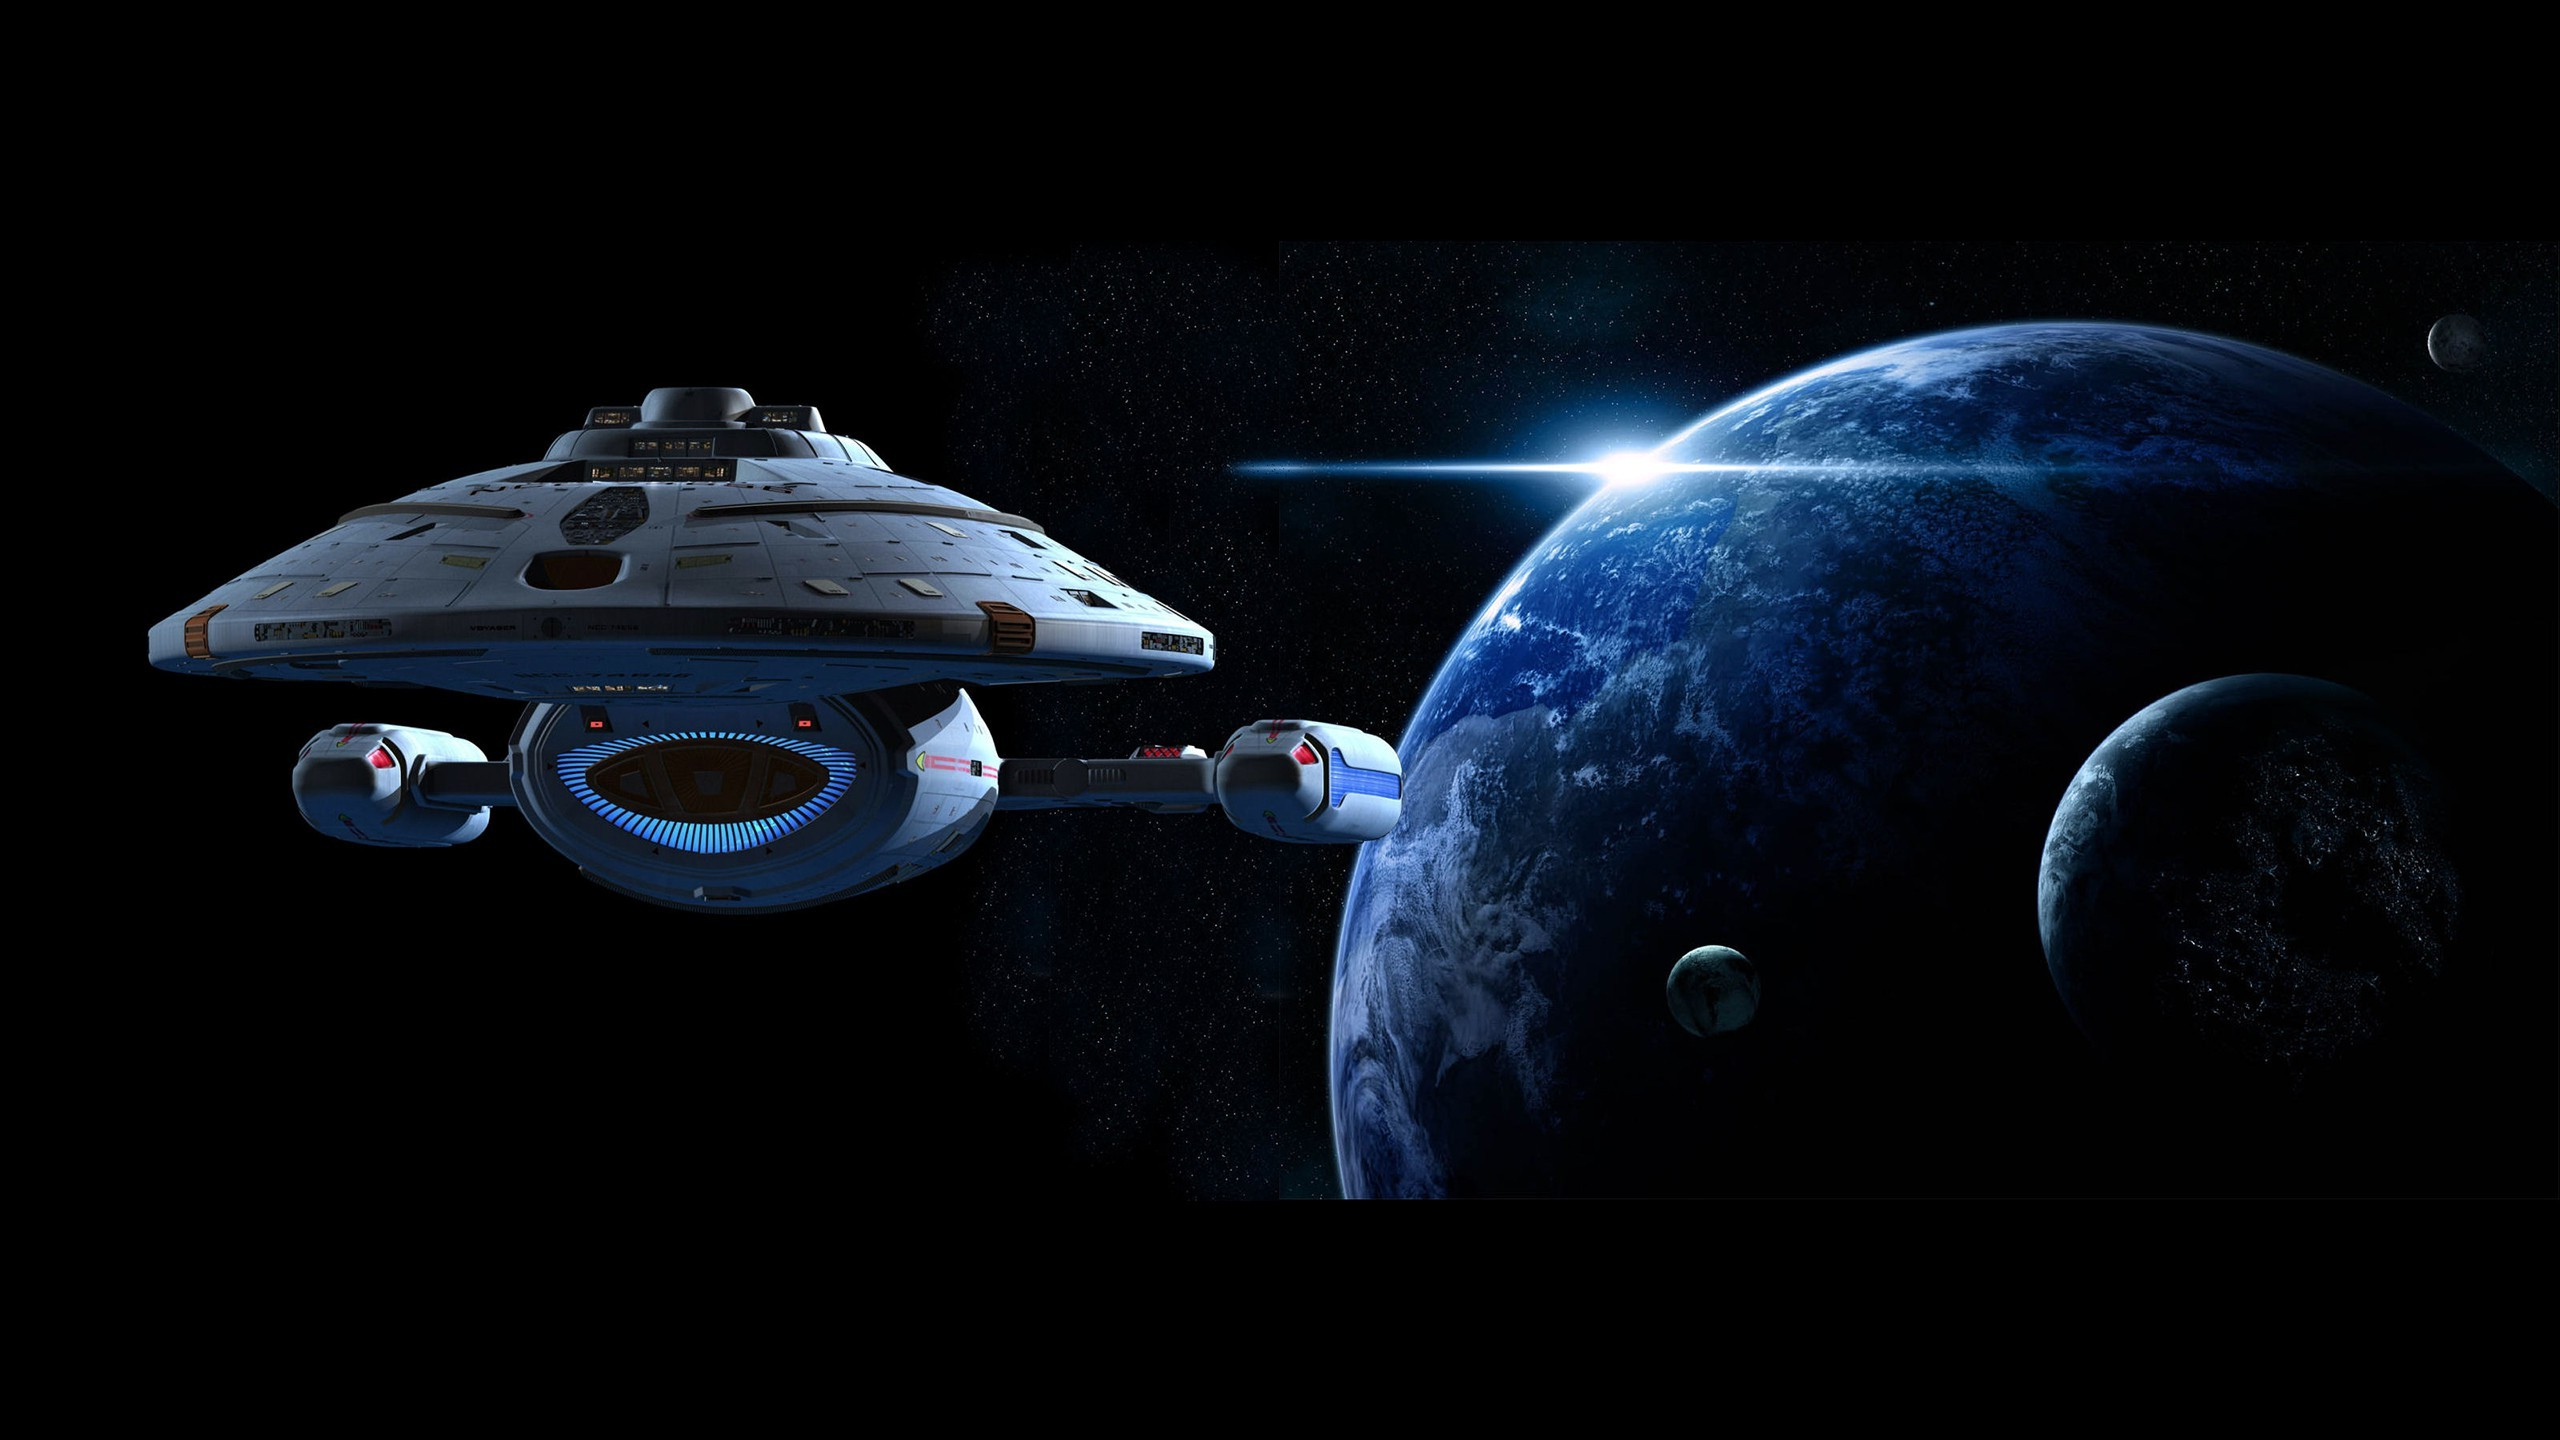 Love Magic Hd Live Wallpaper Download Star Trek Voyager Wallpaper High Resolution Gallery